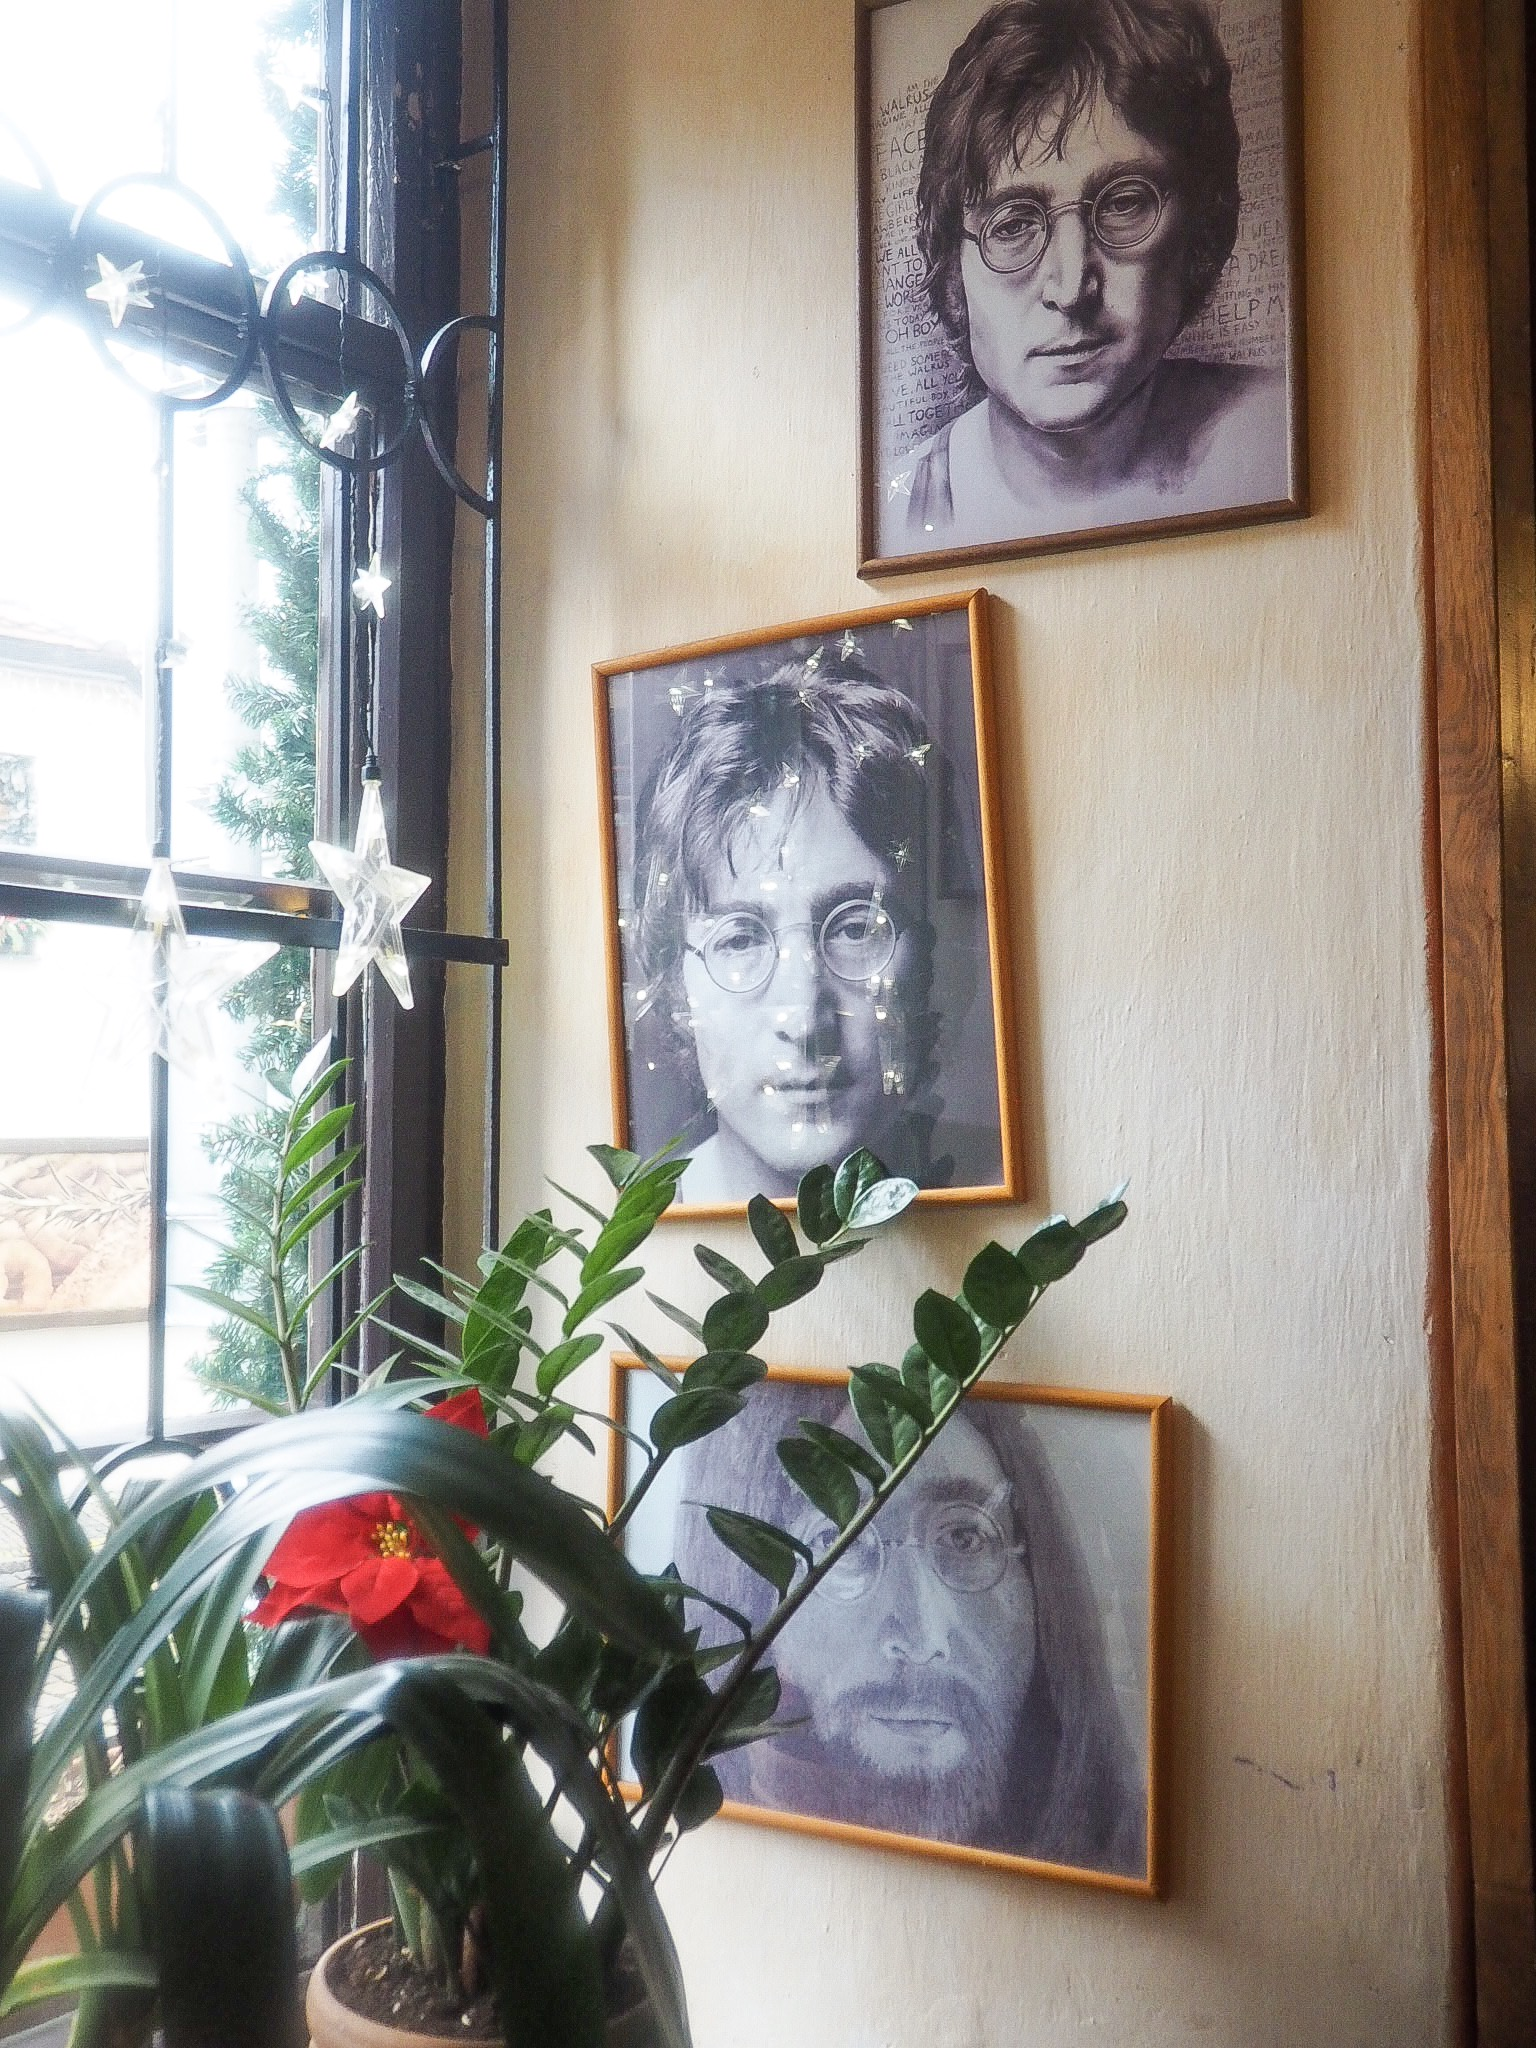 John lennon pub in prague